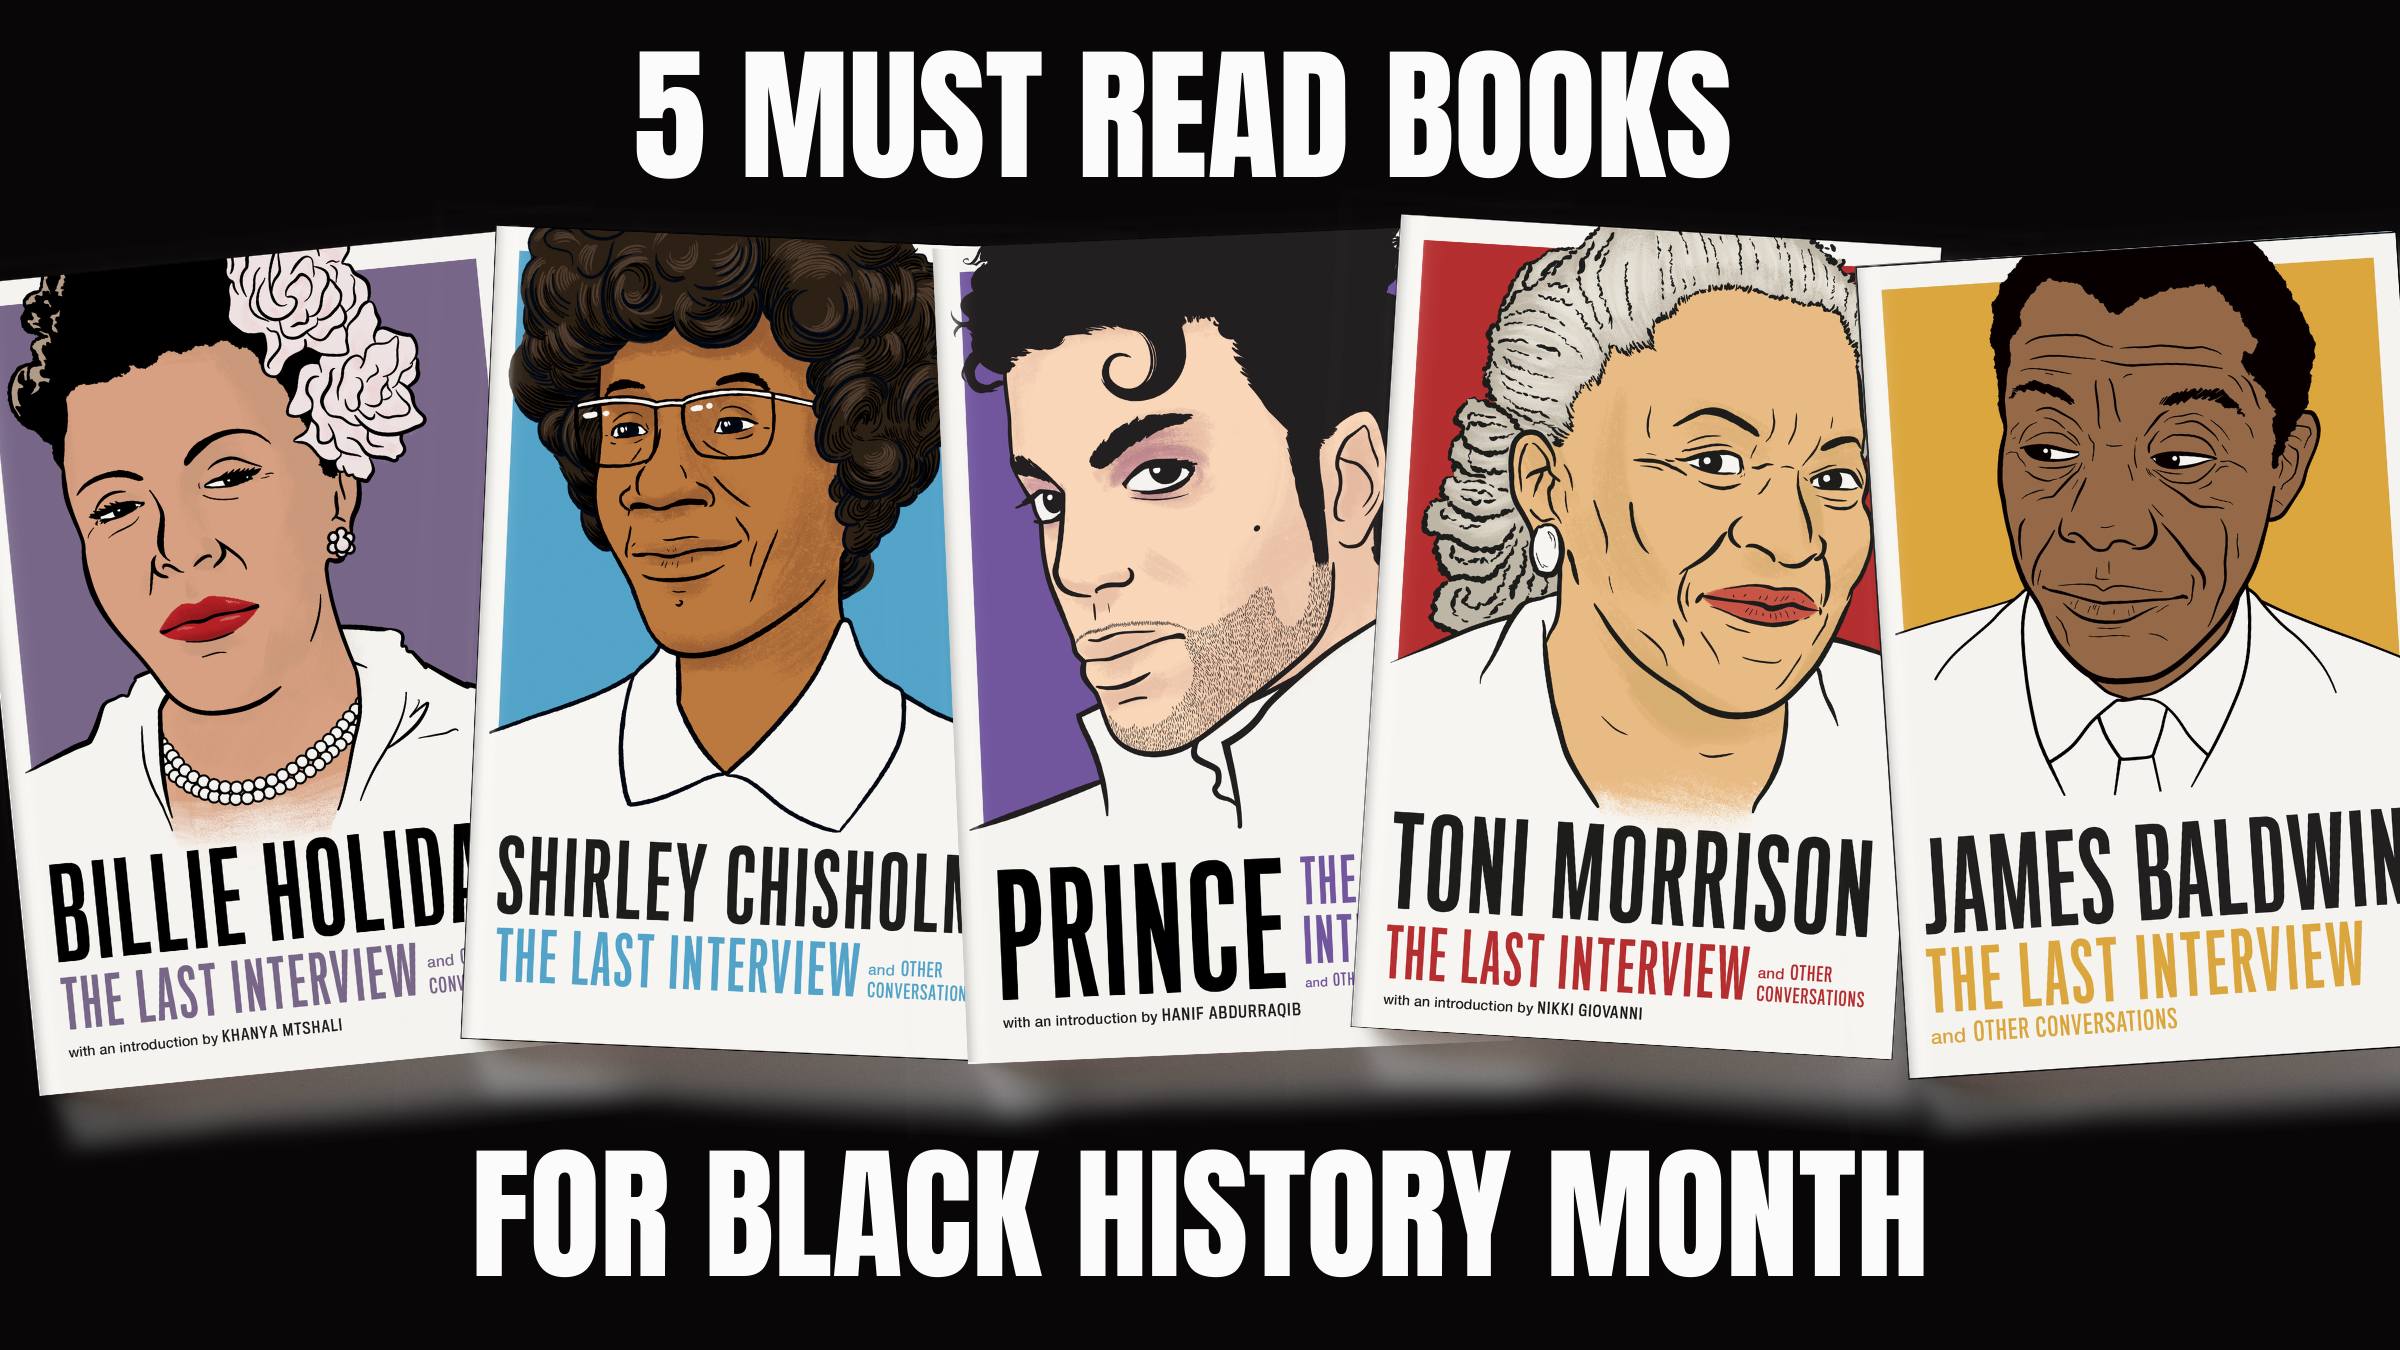 5 Must Read Books for Black History Month